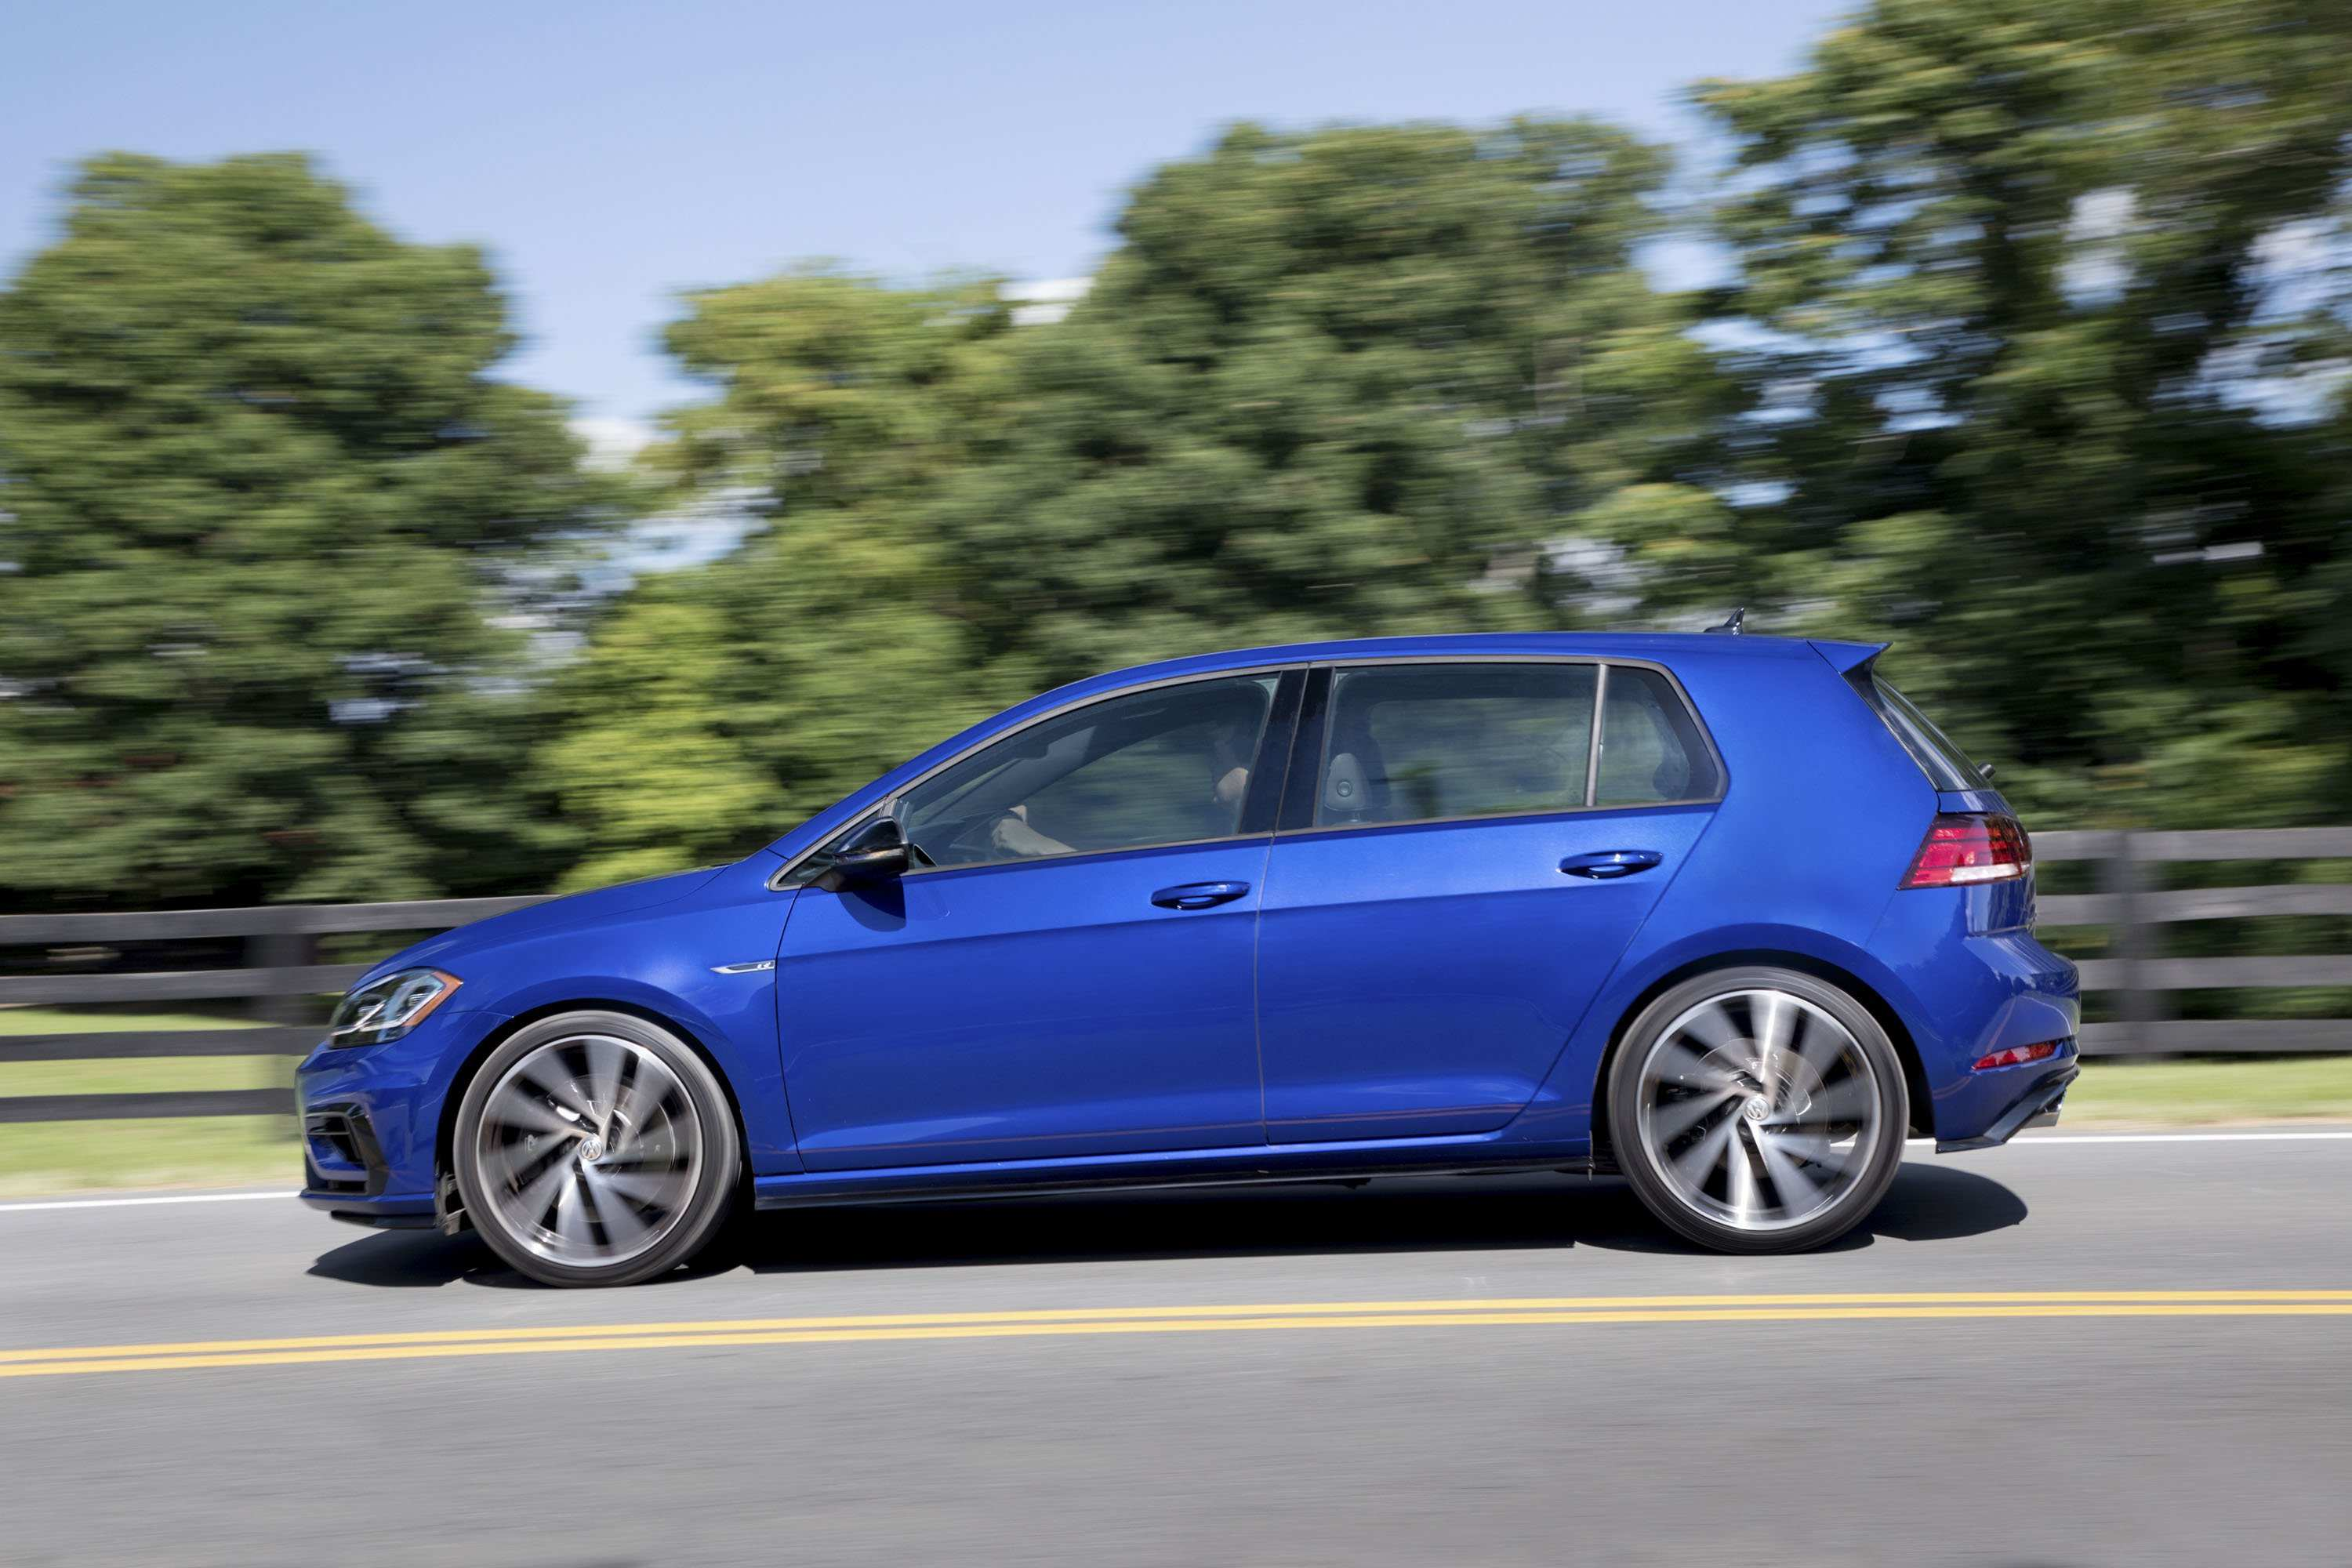 45 Best Volkswagen Golf R 2020 Exterior And Interior